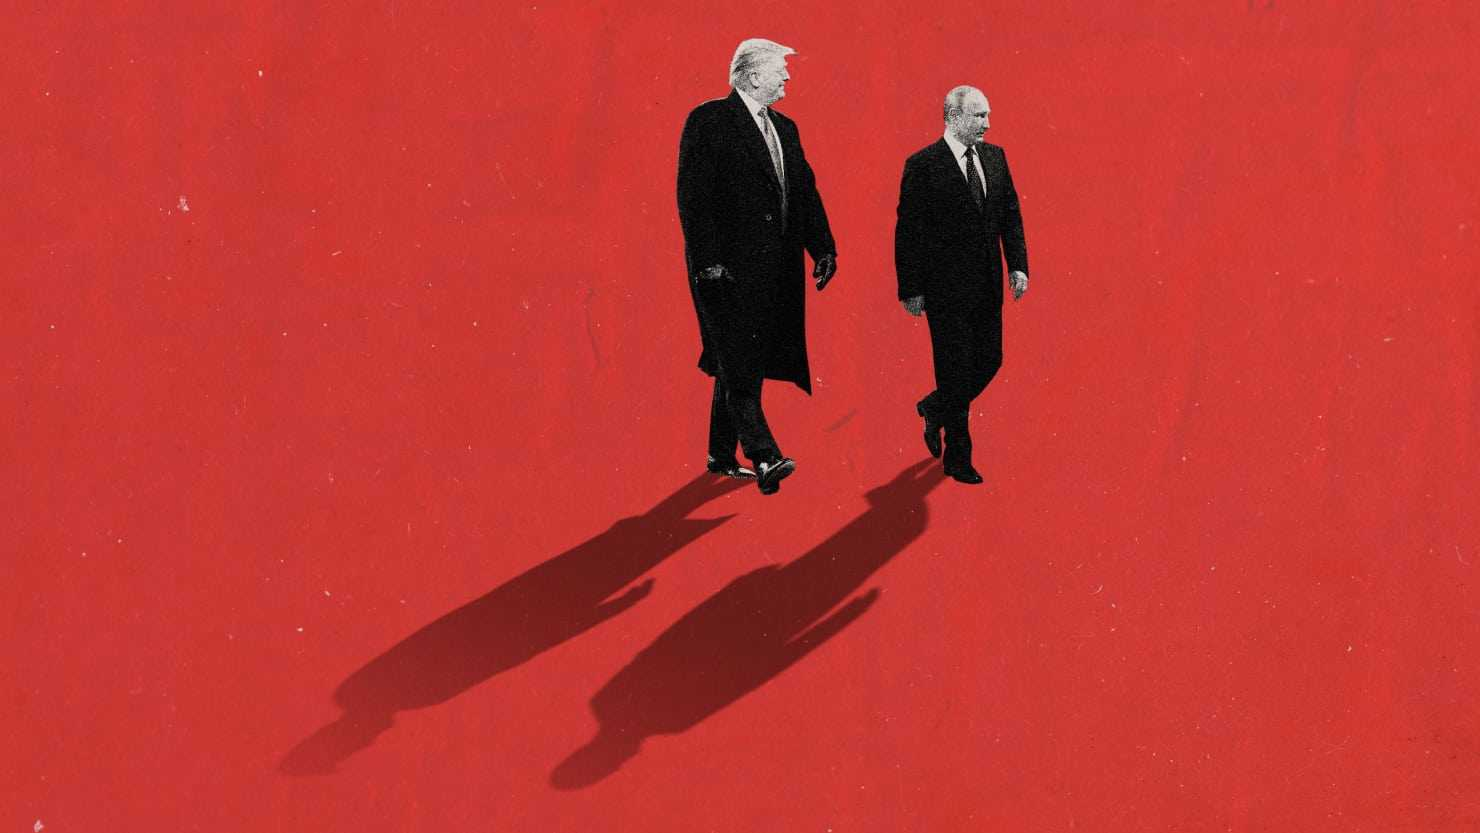 We Need to Know What Happened When Trump Was Left Alone With Putin